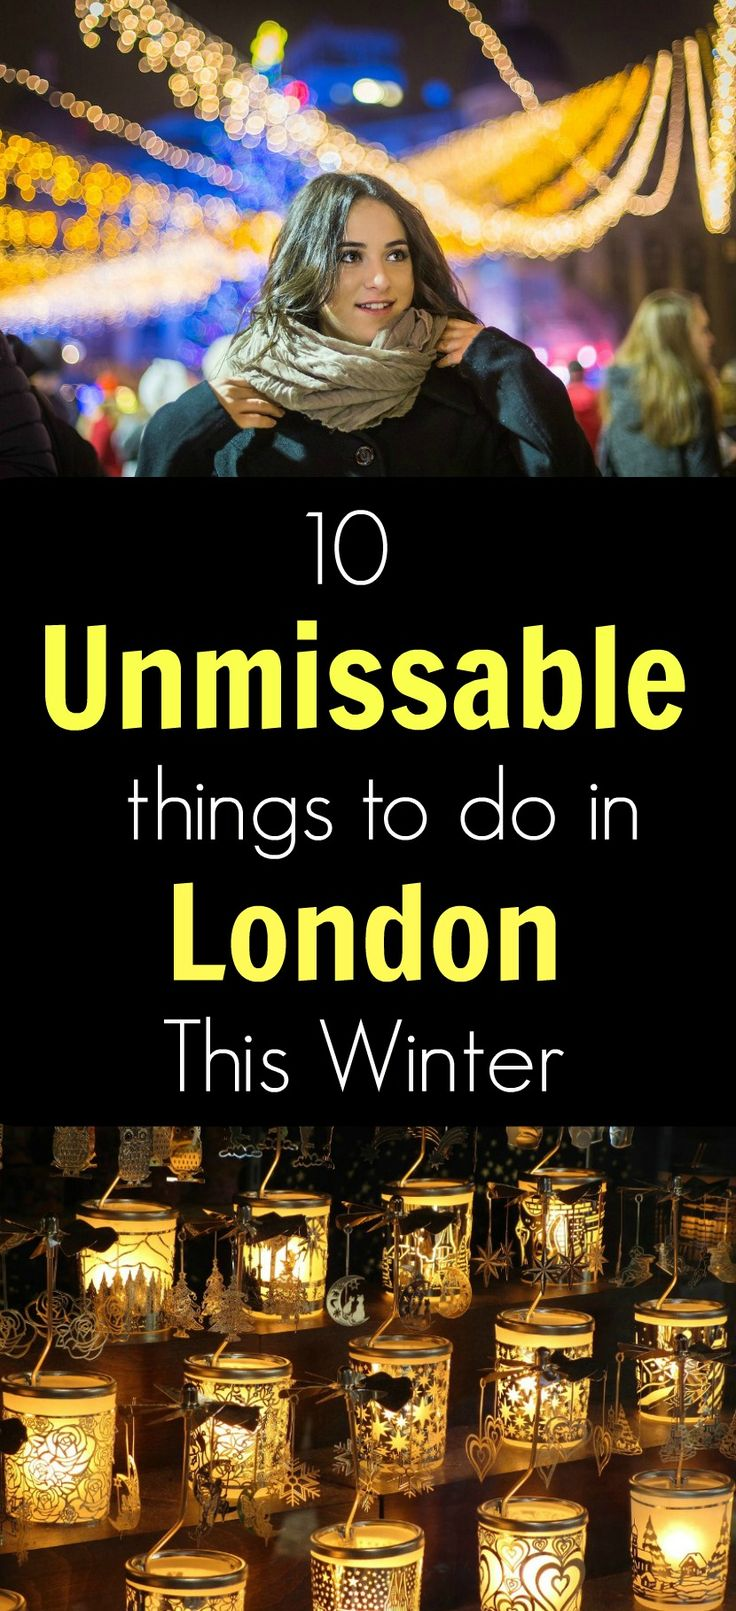 winter-london-2016 #RePin by AT Social Media Marketing - Pinterest Marketing Specialists ATSocialMedia.co.uk